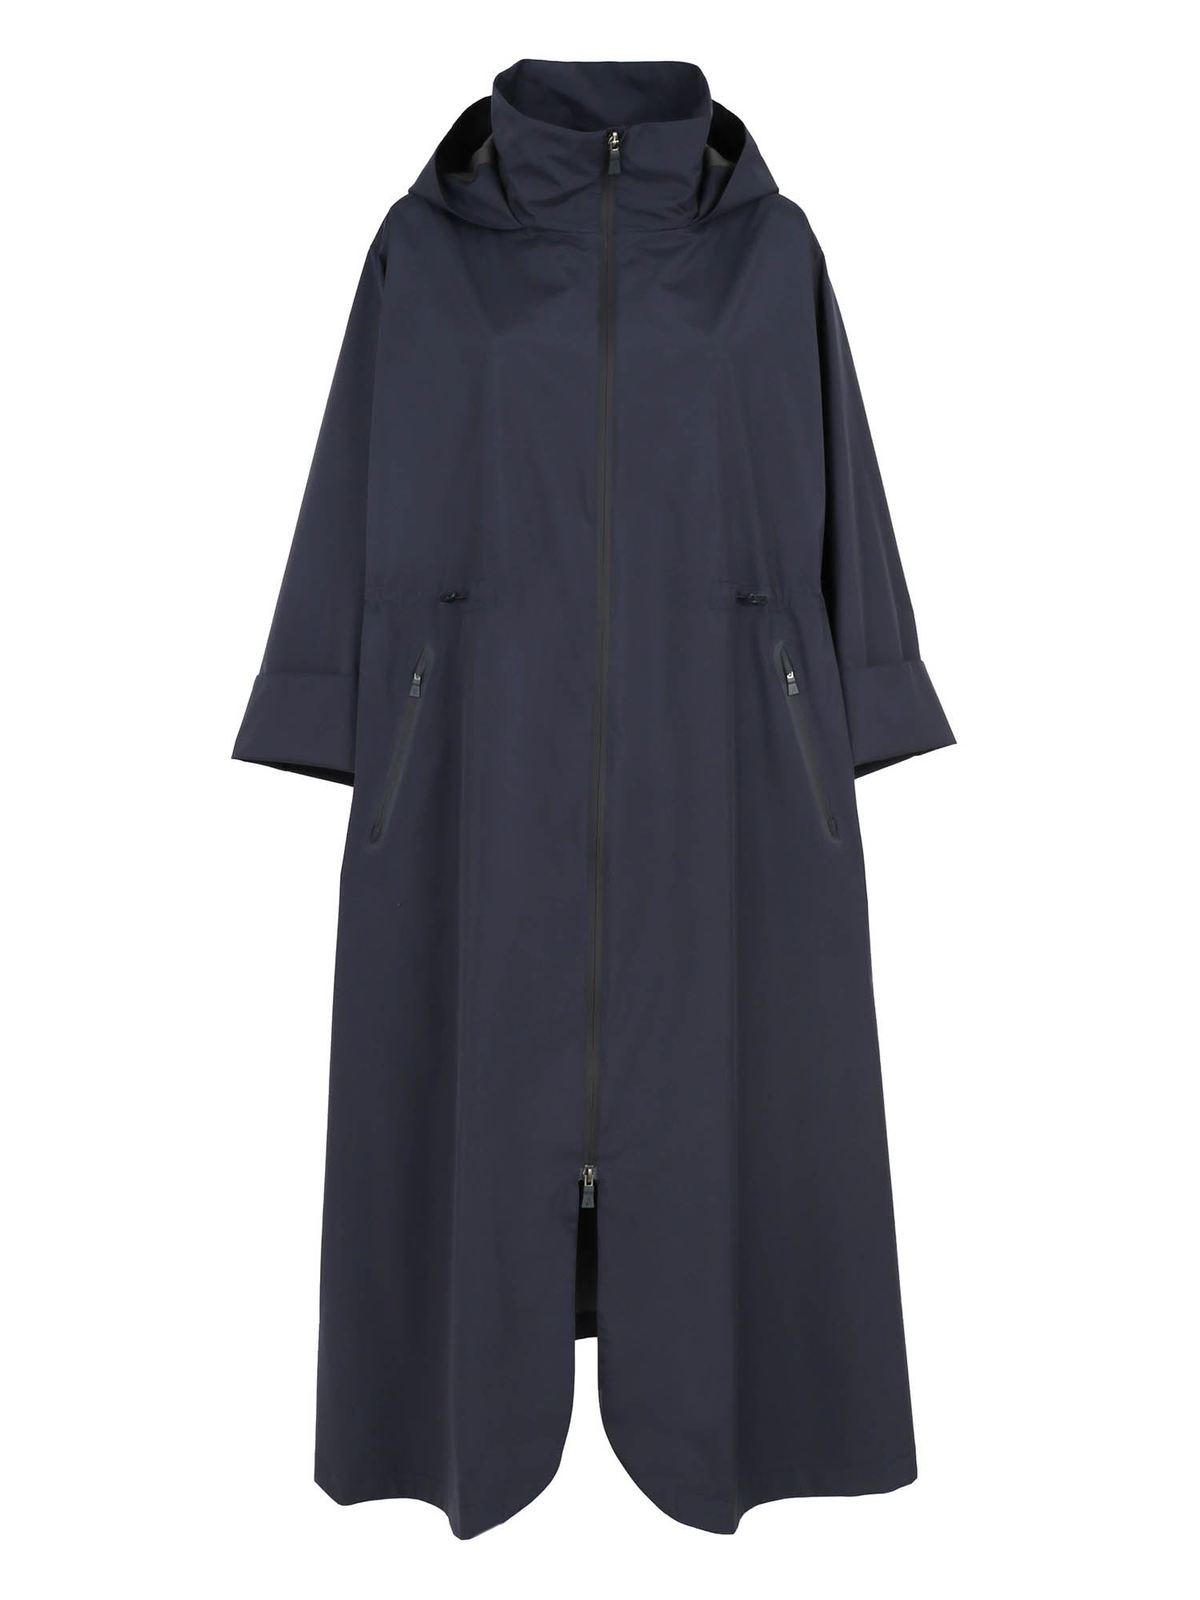 Herno Coats OVERSIZED RAINCOAT IN BLUE